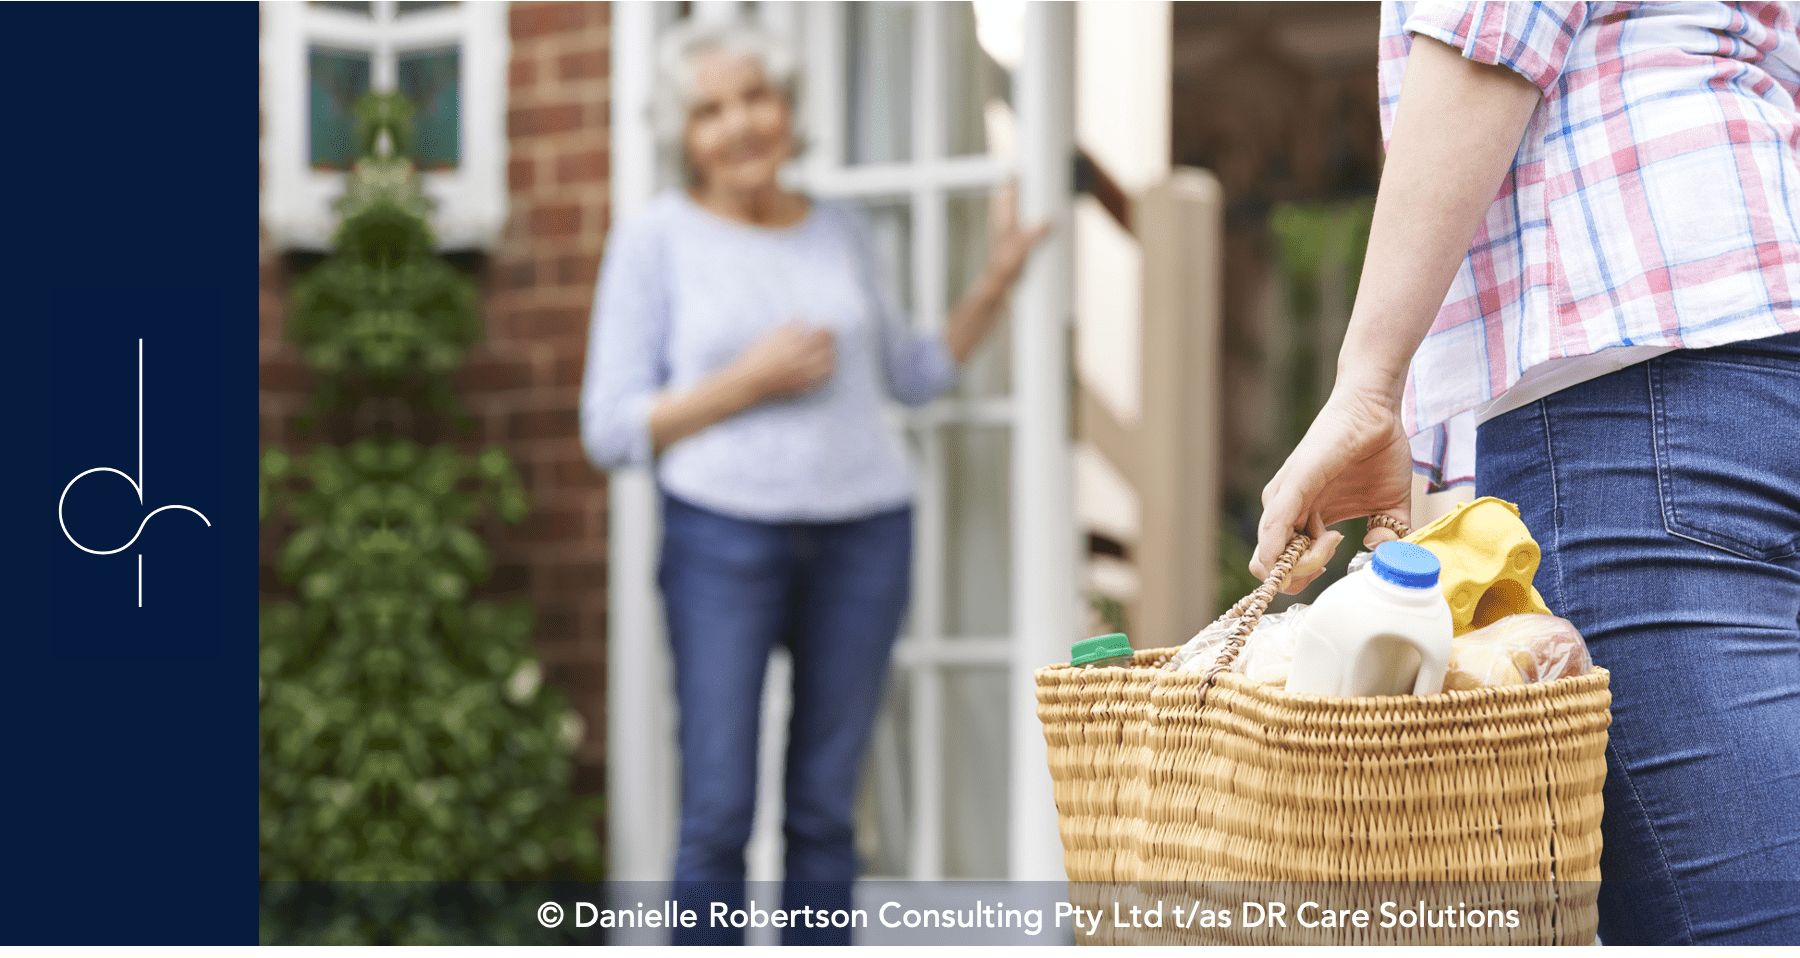 Concerned About the Amount & Type of Care for Your Loved Ones?